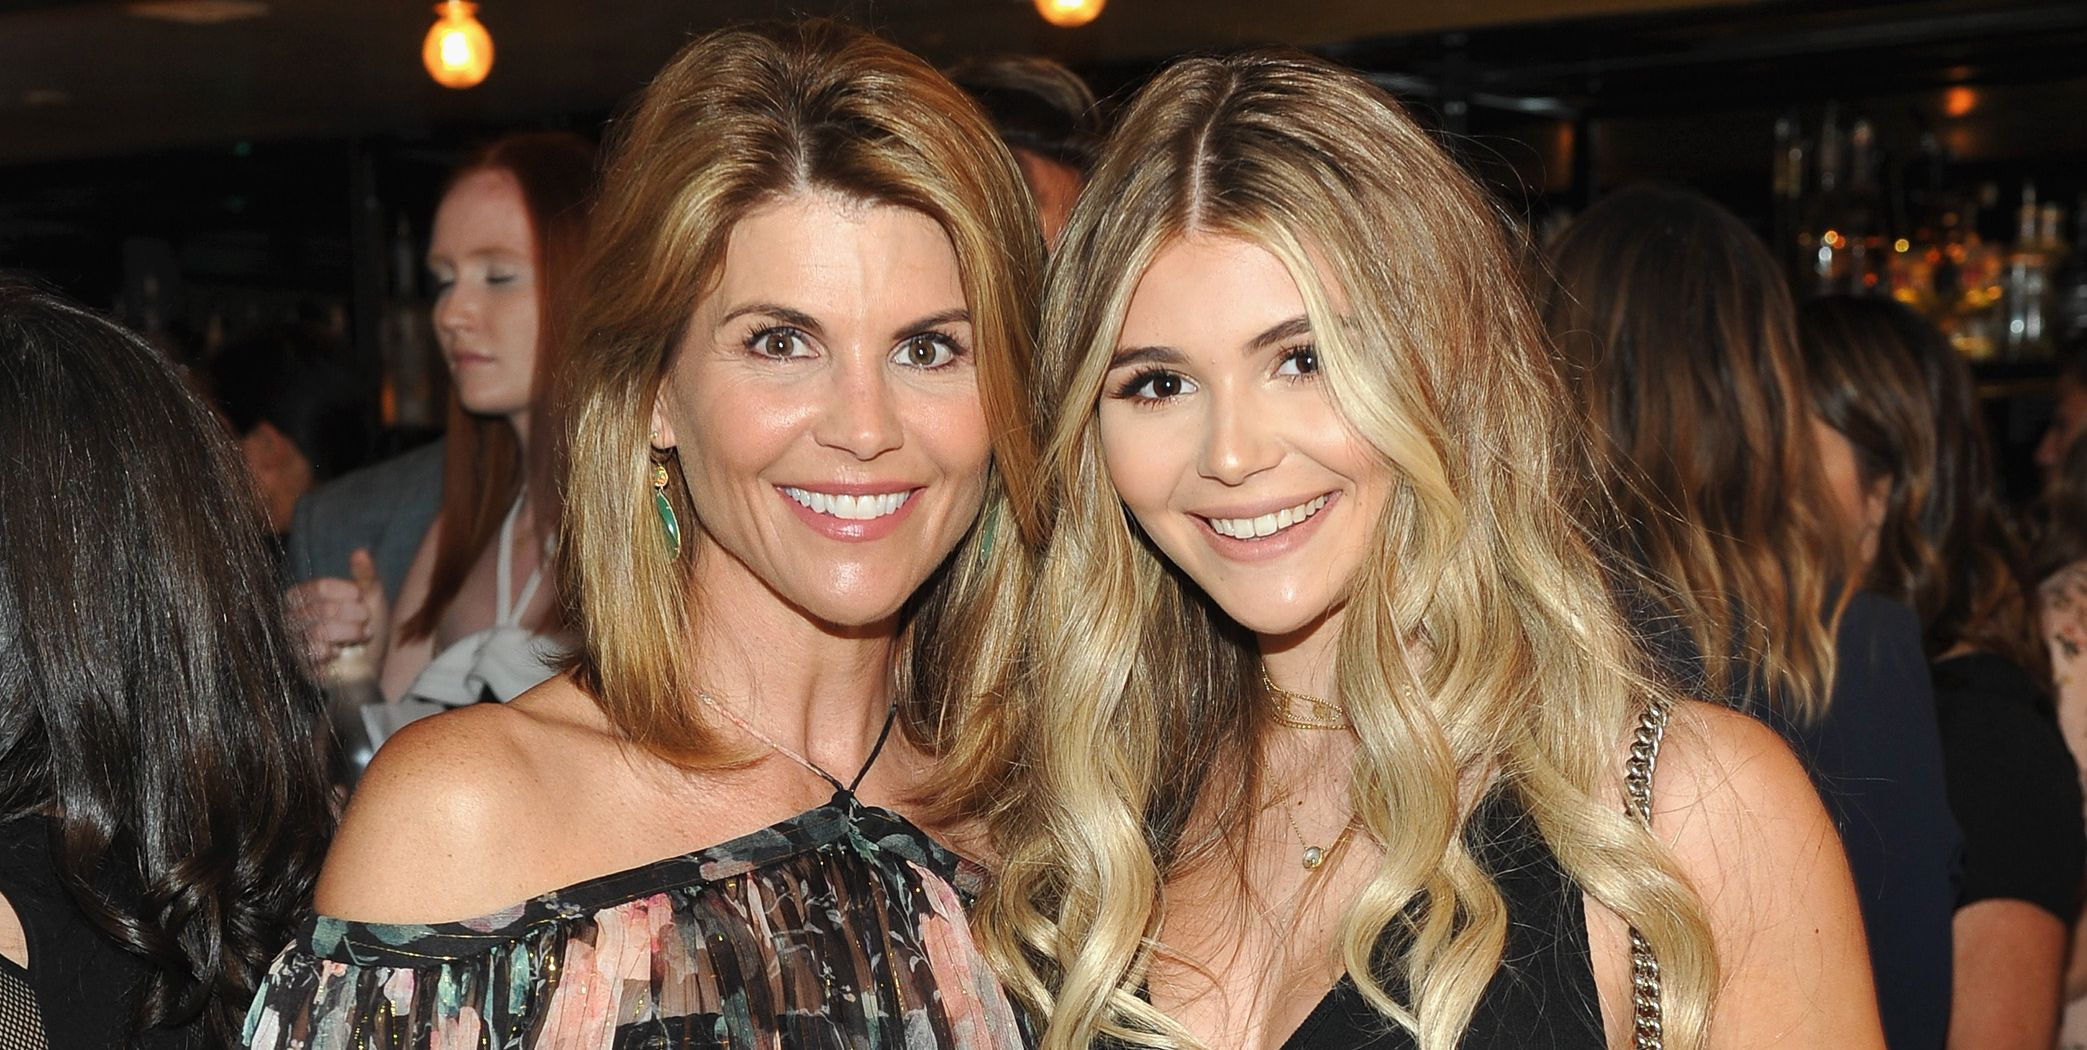 Olivia Jade and Lori Loughlin